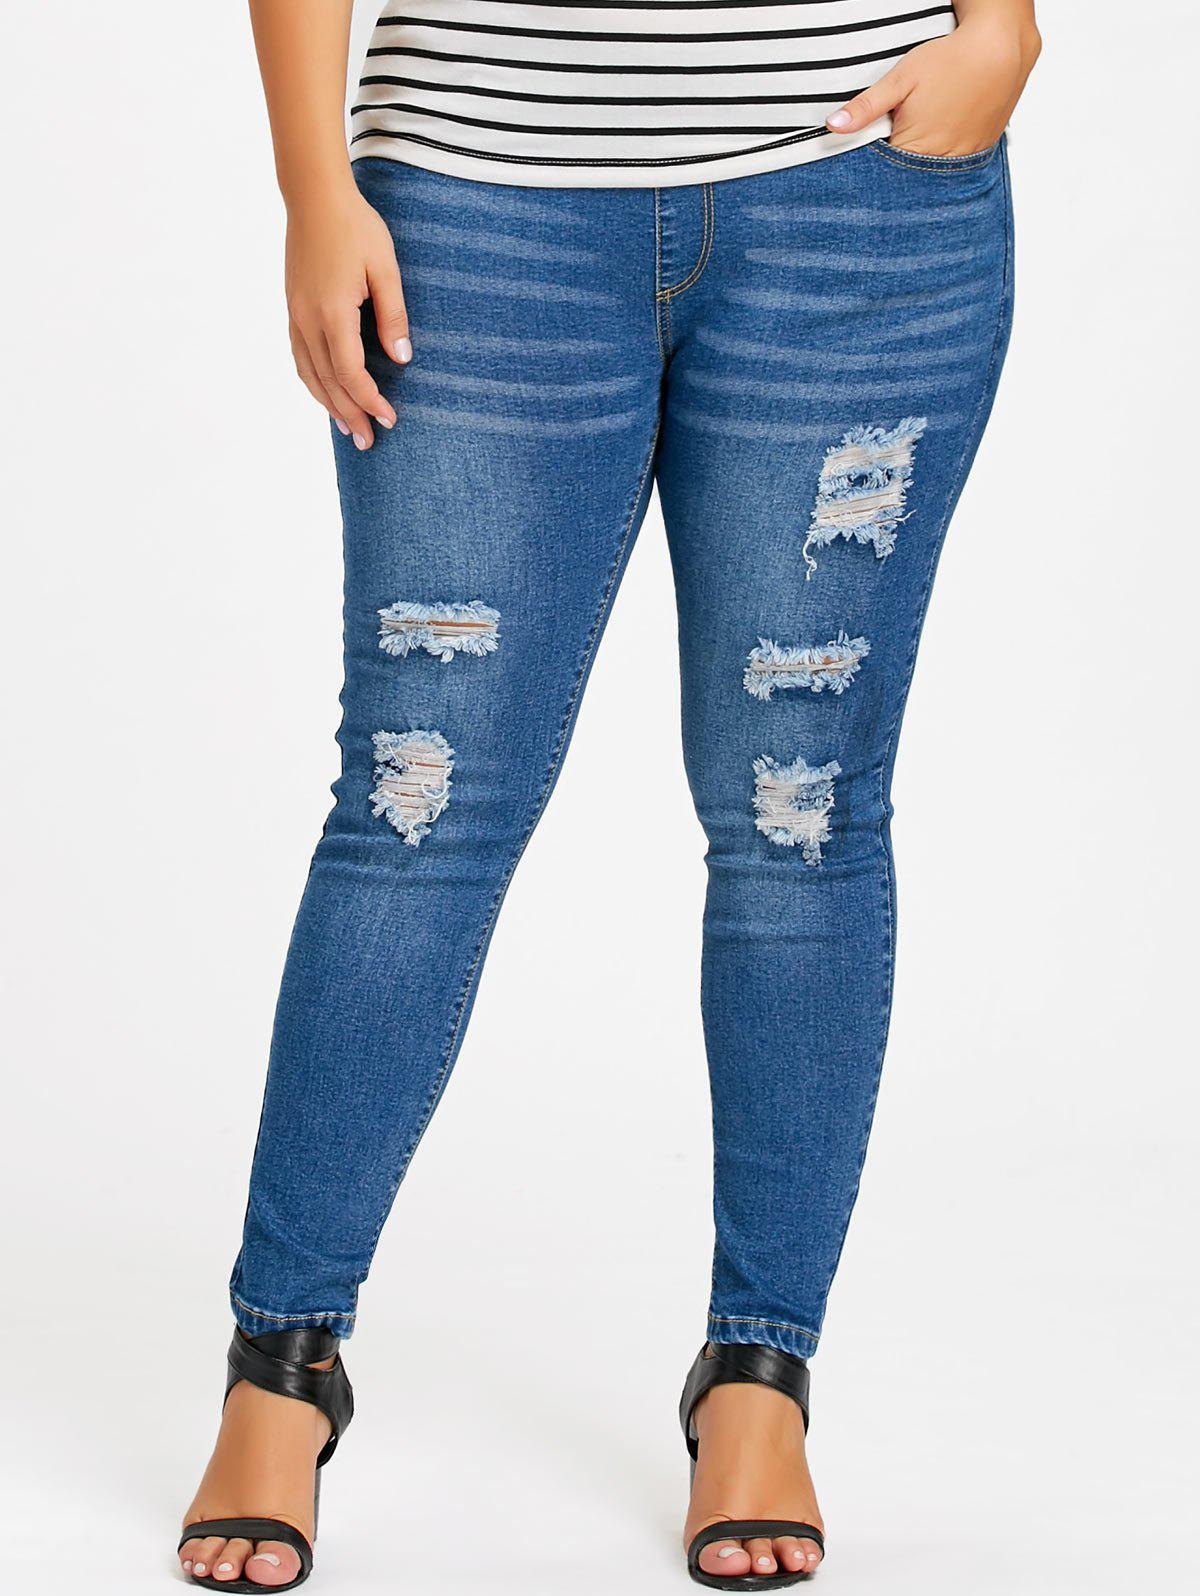 Plus Size Destroyed Tight JeansWOMEN<br><br>Size: 3XL; Color: DENIM BLUE; Style: Casual; Length: Normal; Material: Polyester; Fit Type: Skinny; Waist Type: Mid; Closure Type: Elastic Waist; Pattern Type: Solid; Embellishment: Frayed; Pant Style: Pencil Pants; Weight: 0.5500kg; Package Contents: 1 x Jeans;